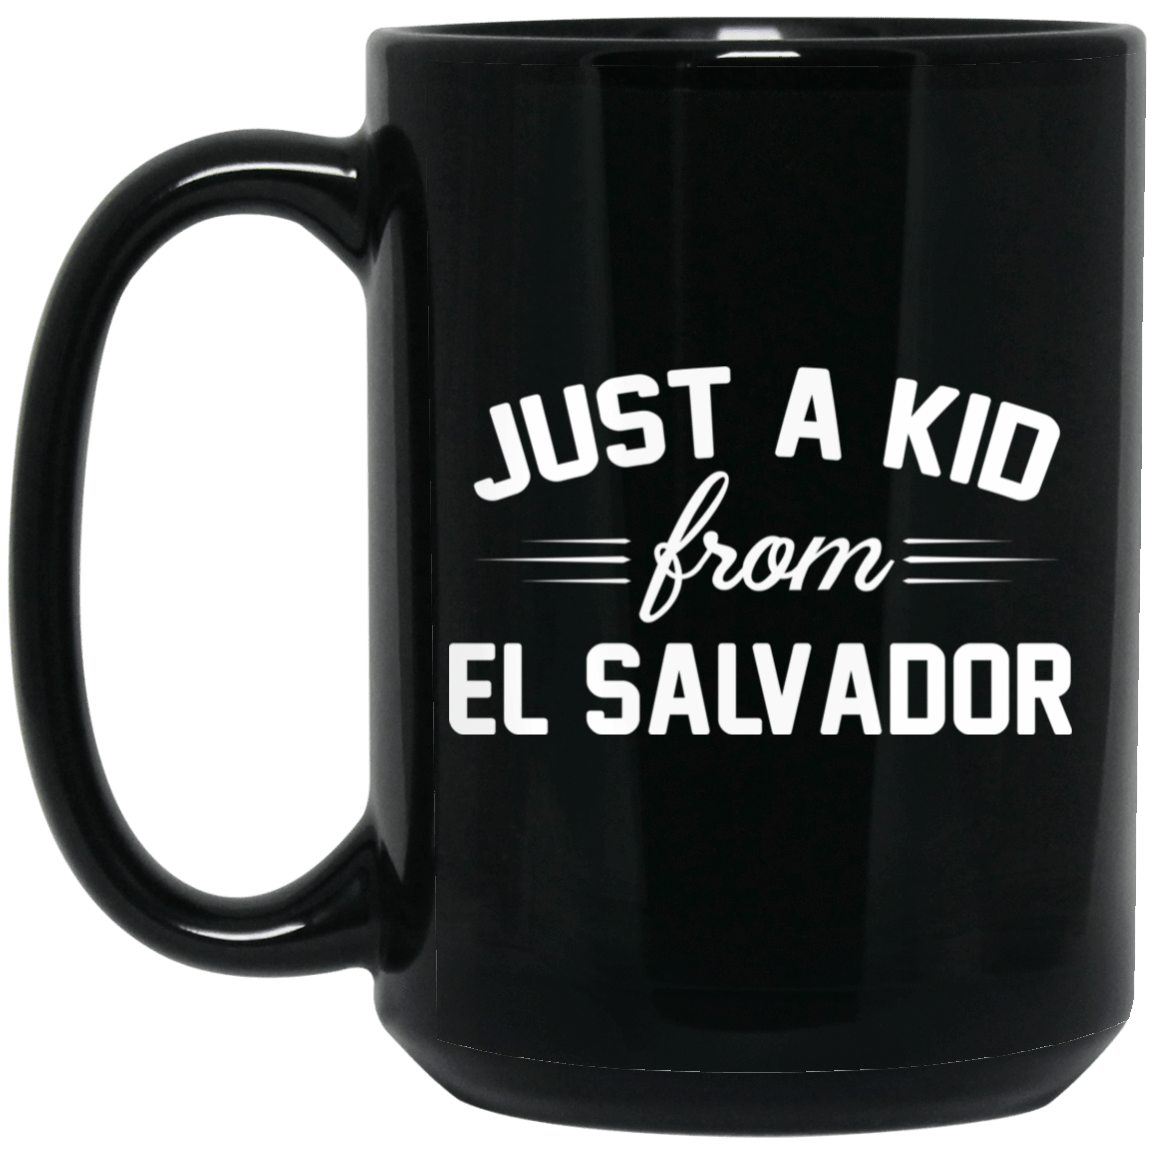 Just A Kid Store | El Salvador Mug 1066-10182-72111272-49311 - Tee Ript